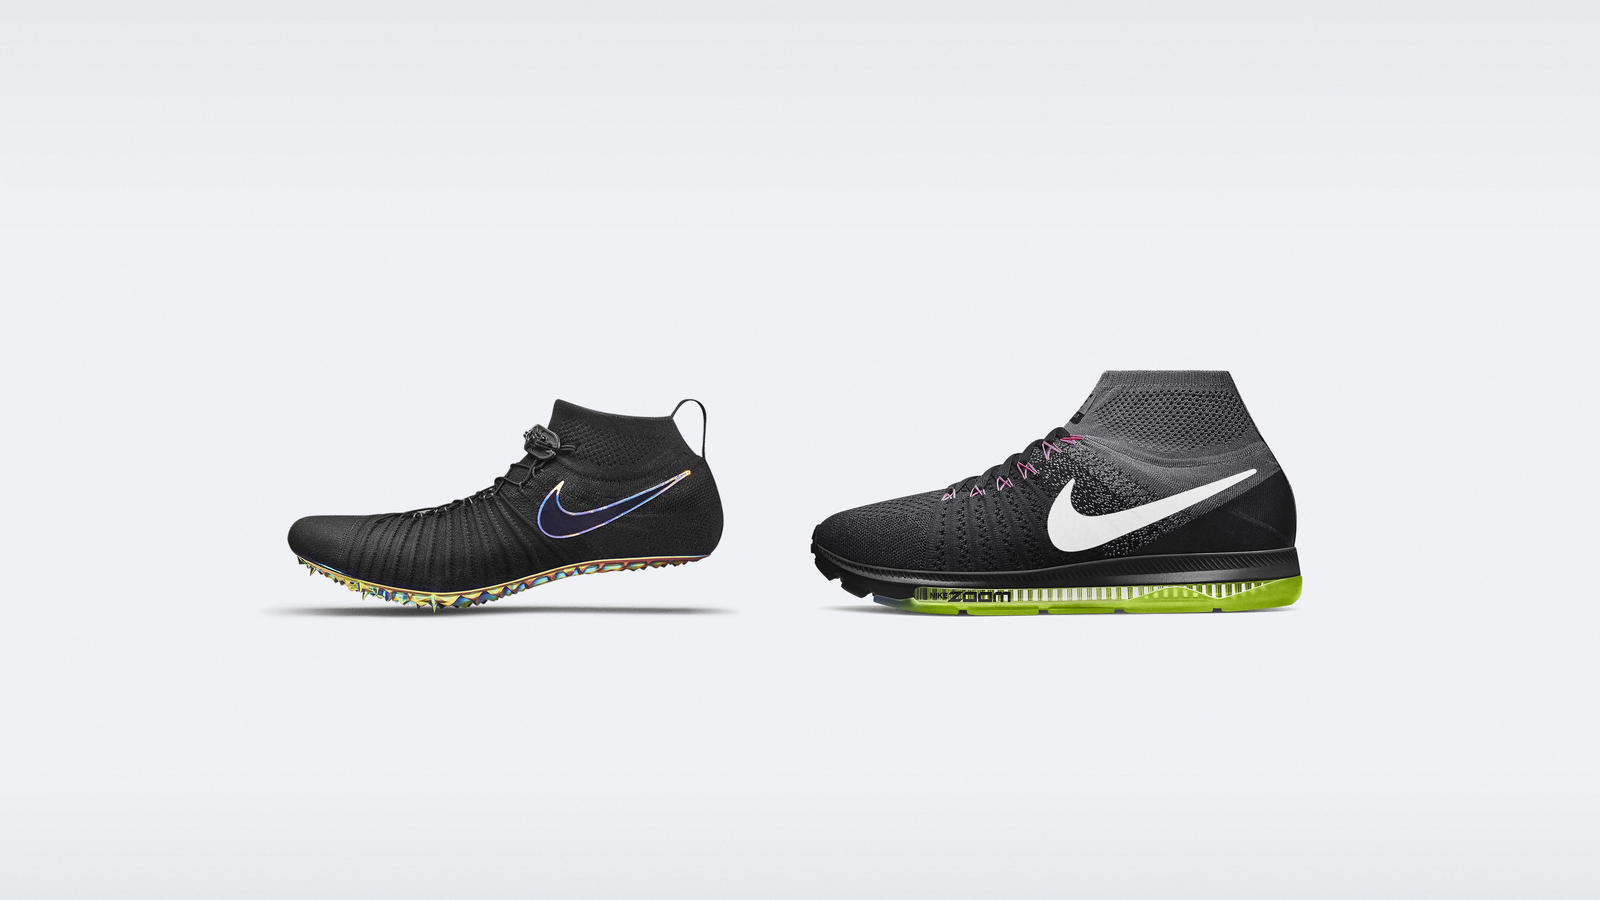 b4155e4b4da Nike Zoom Superfly Flyknit and Nike Zoom Air All Out